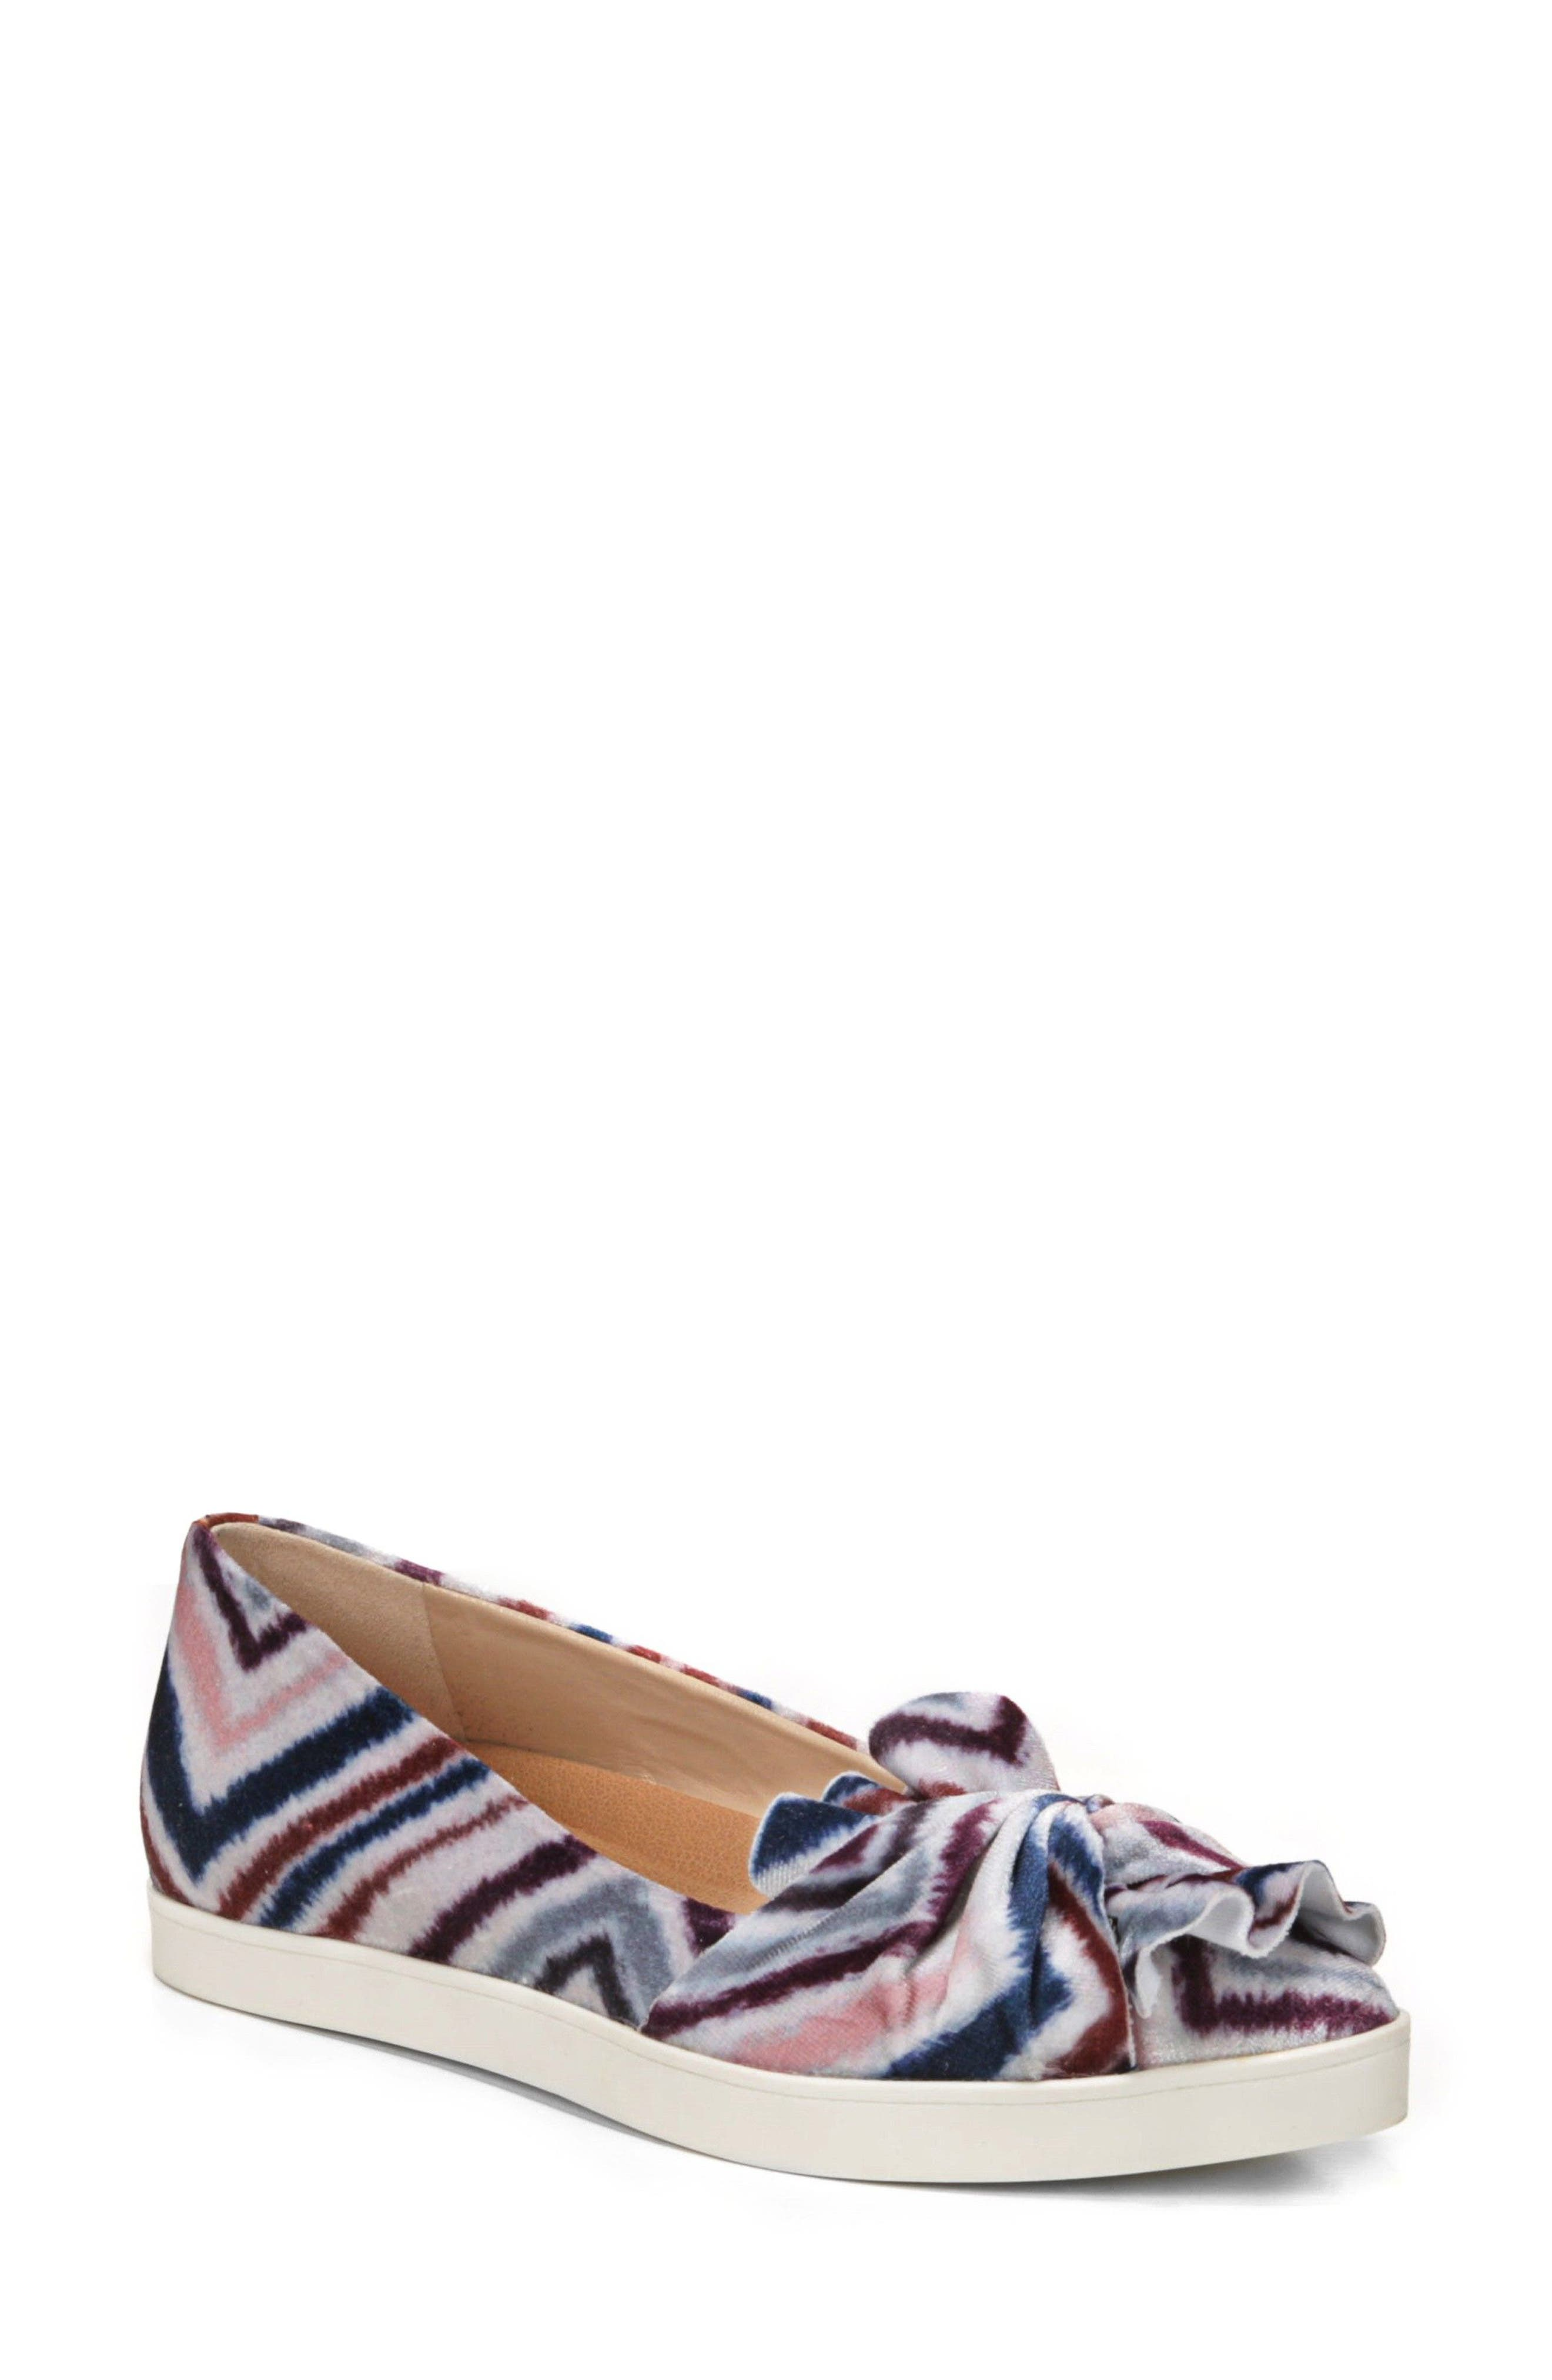 Dr. Scholl's Viv Knotted Sneaker (Women)